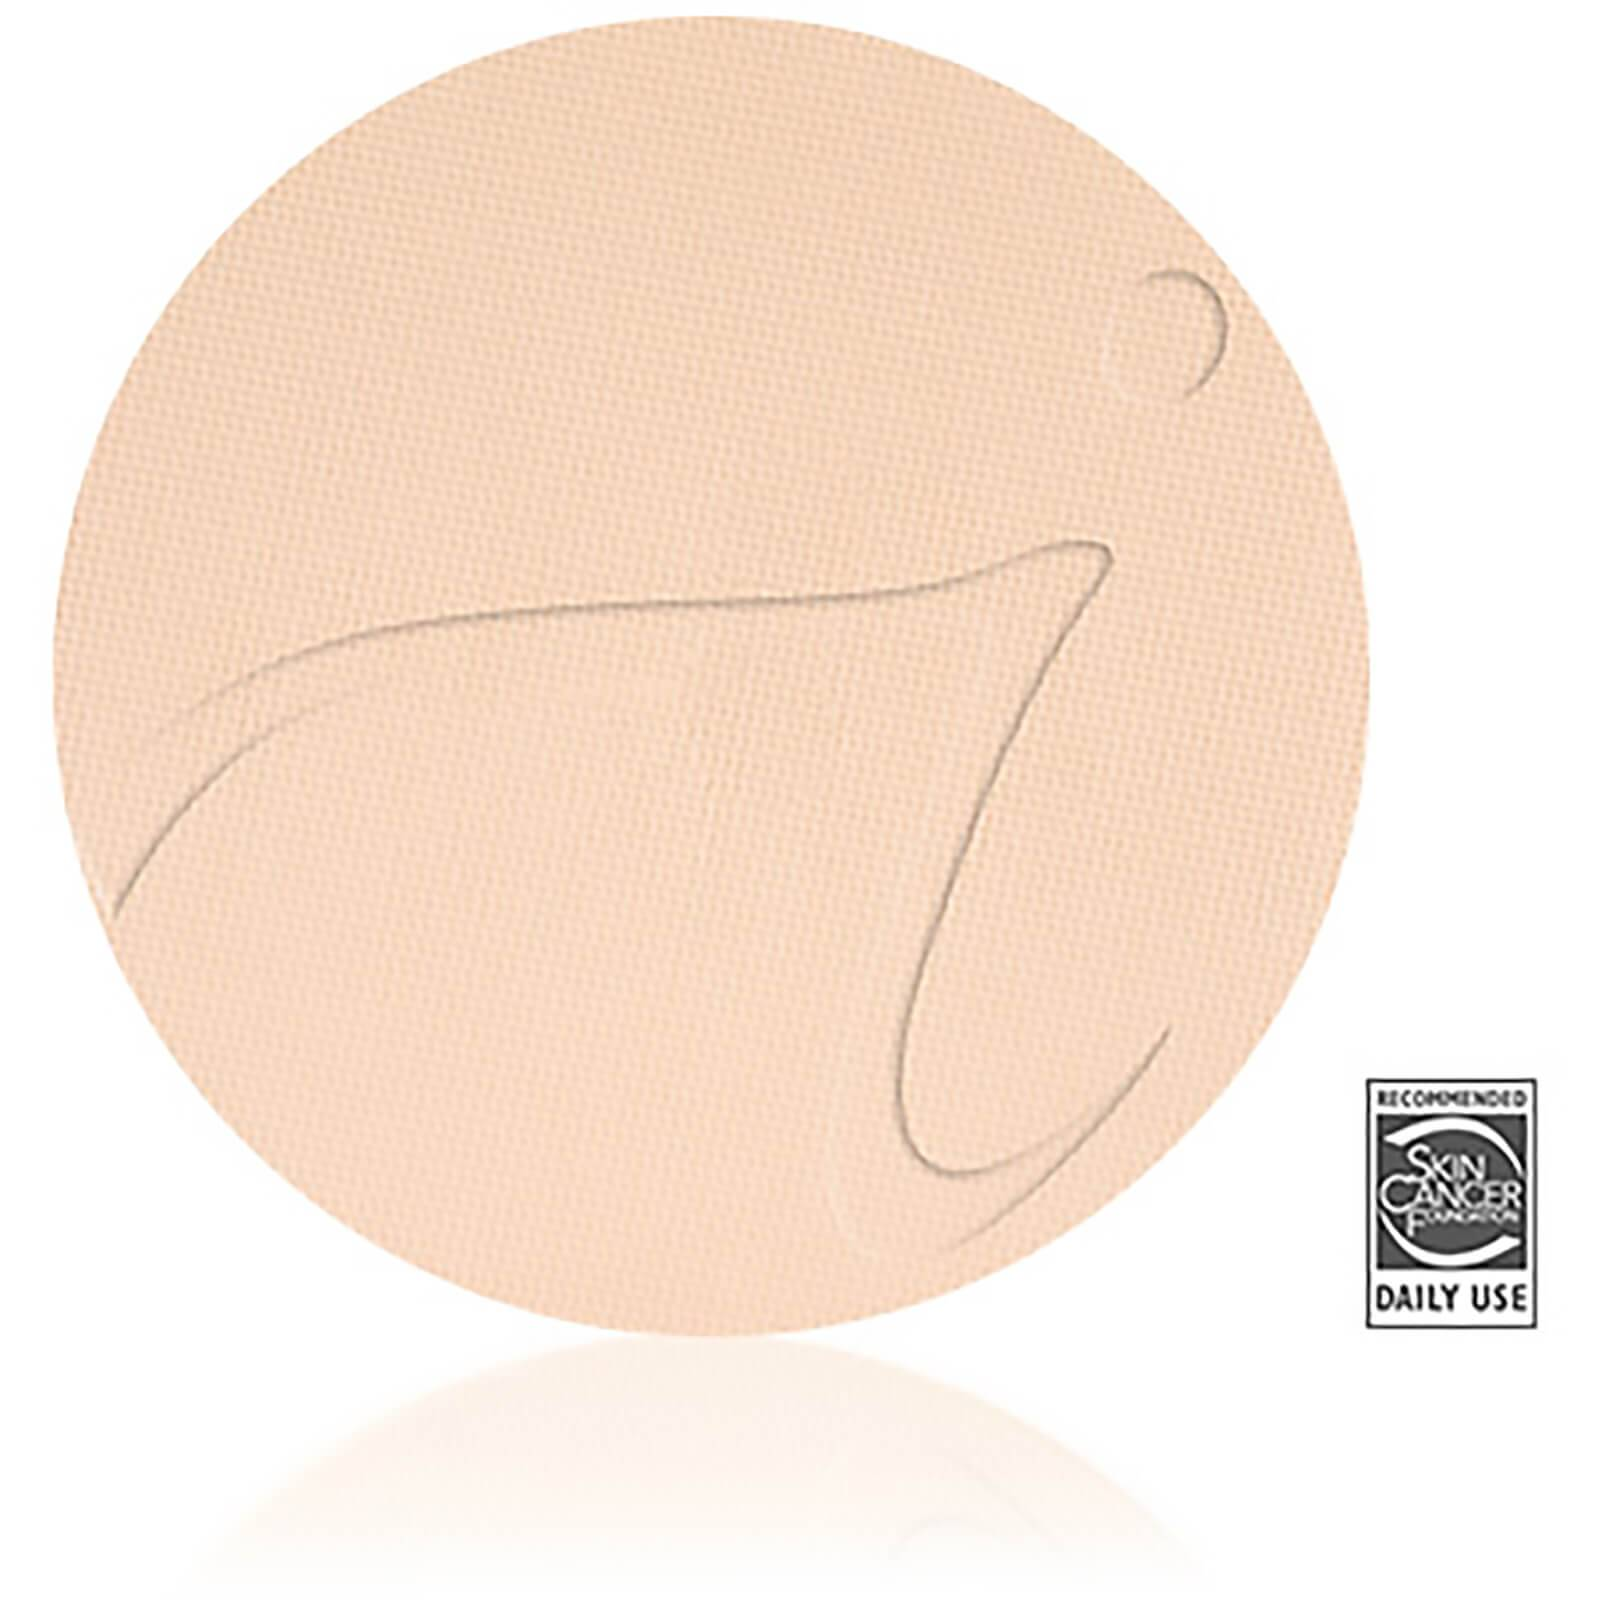 Jane Iredale Pure Pressed Base Mineral Foundation Refill (Various Shades) - Amber